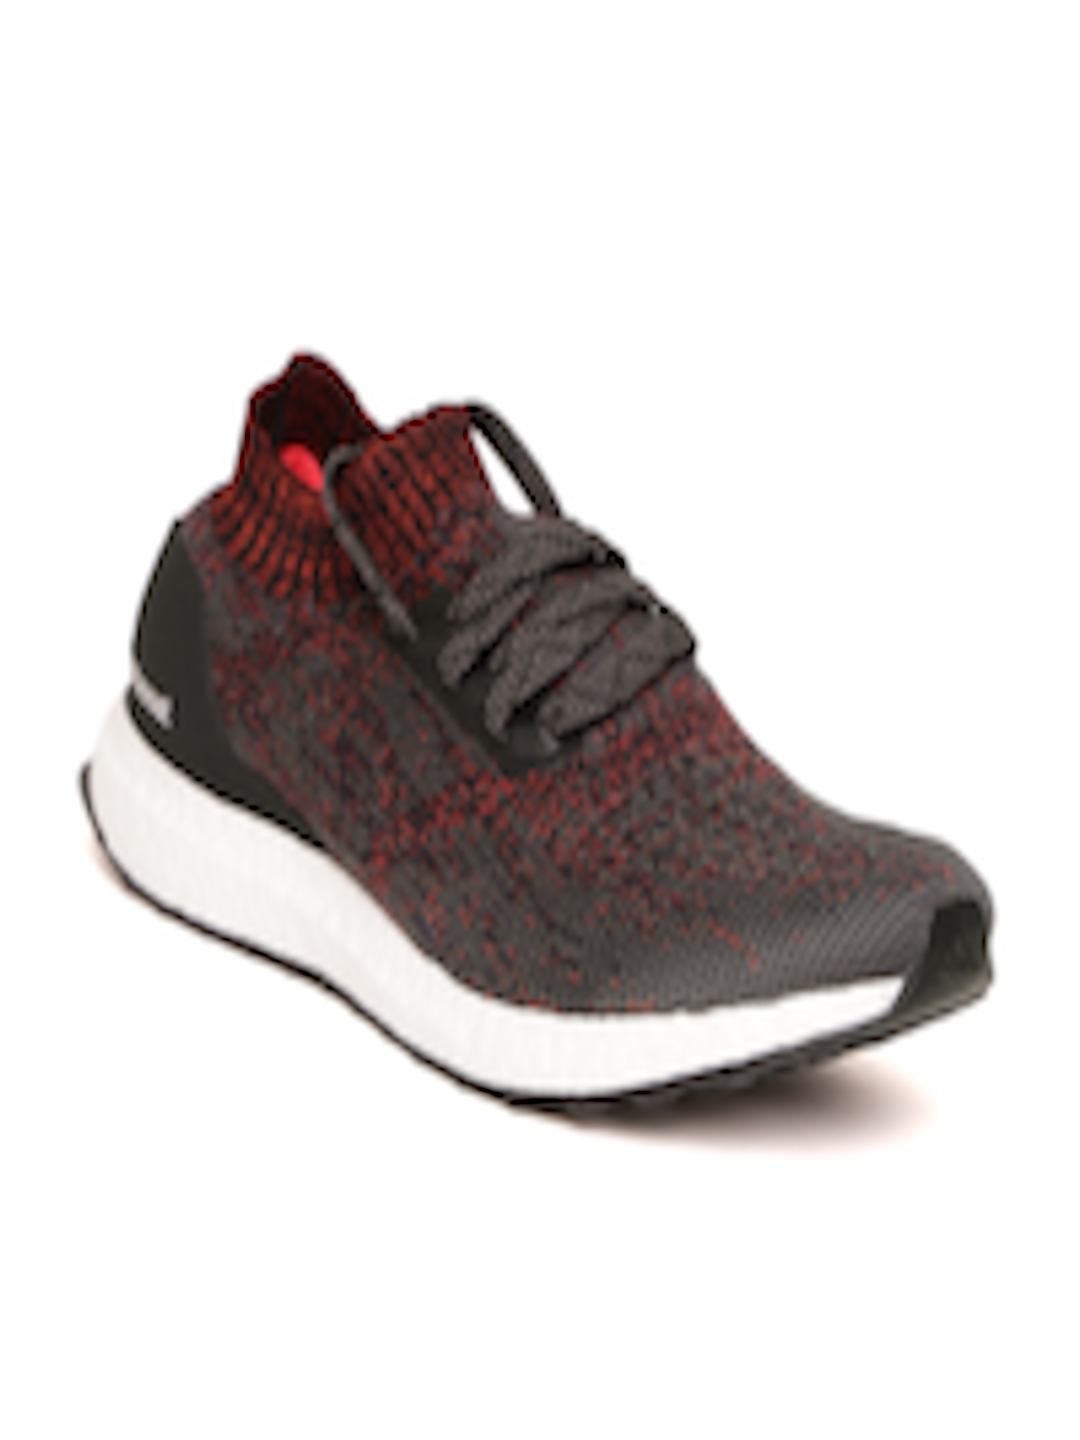 080b89eda4a Buy ADIDAS Men Charcoal Grey   Red Ultraboost Uncaged Running Shoes -  Sports Shoes for Men 2409833